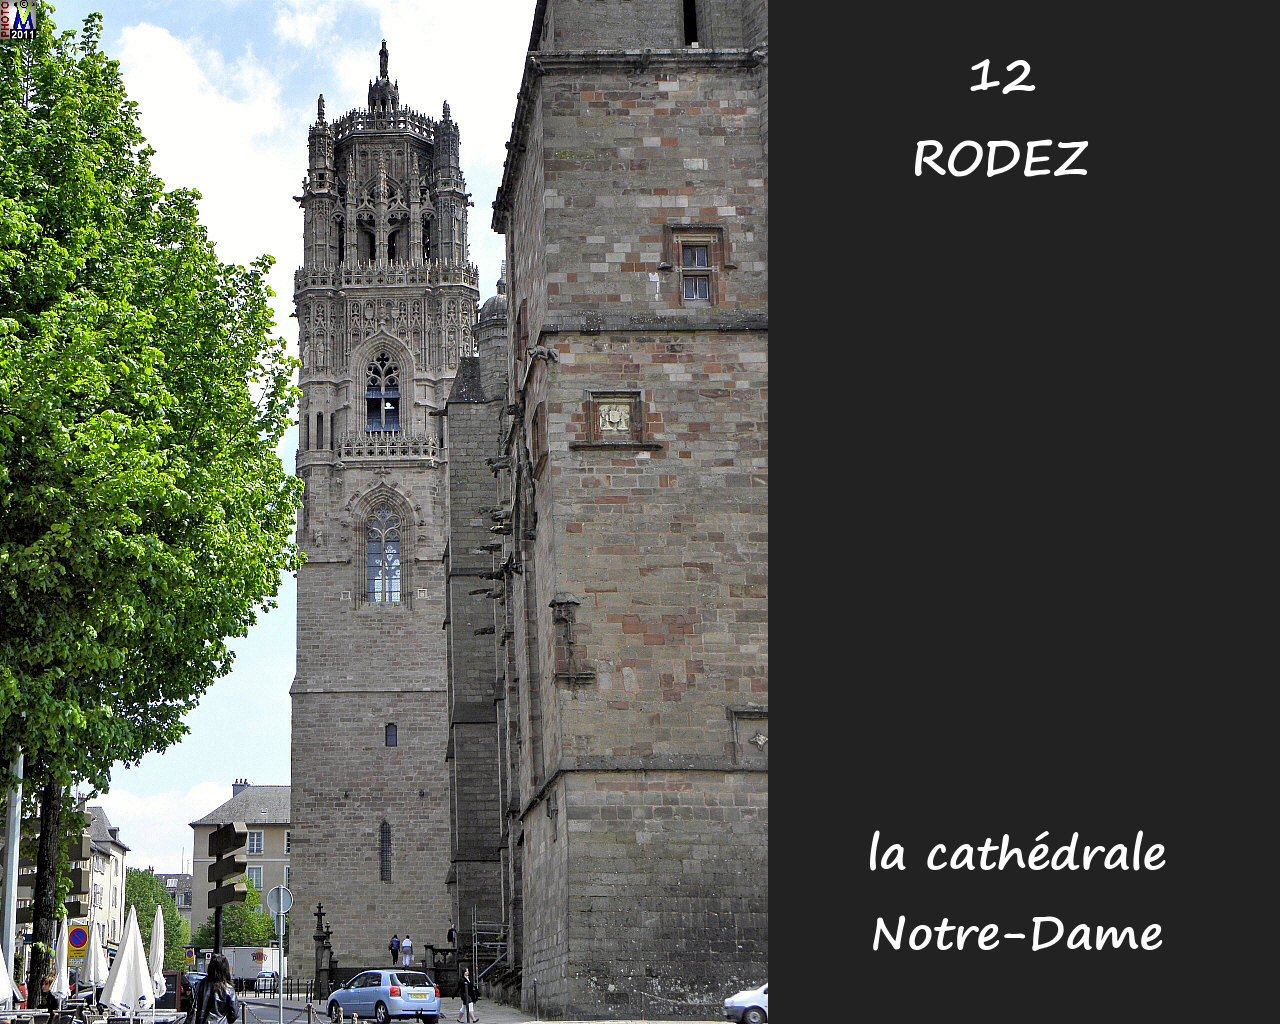 12RODEZ_cathedrale_114.jpg